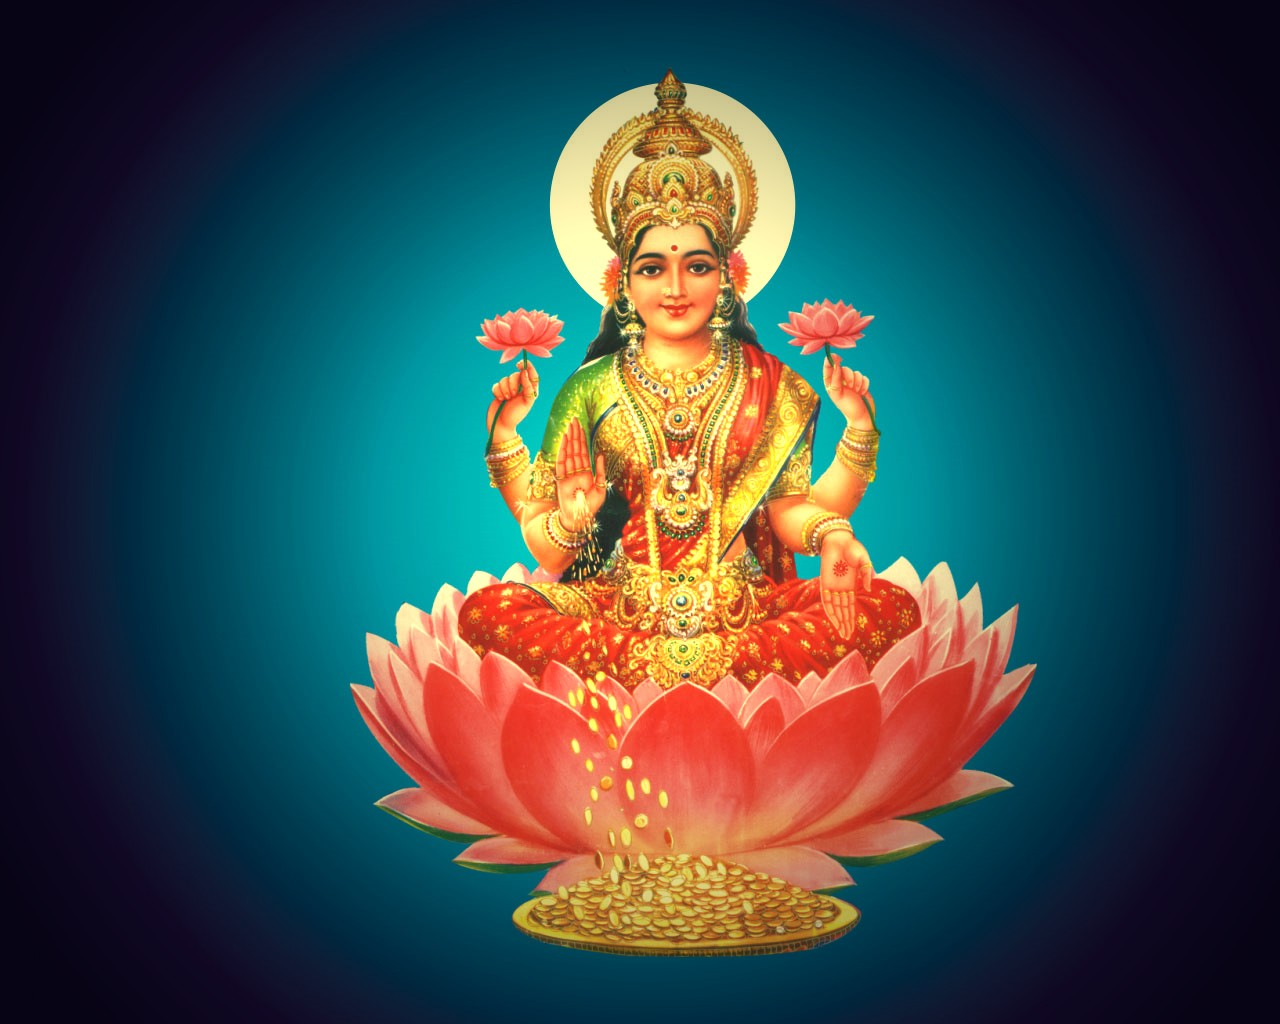 worship Goddess Laxmi in